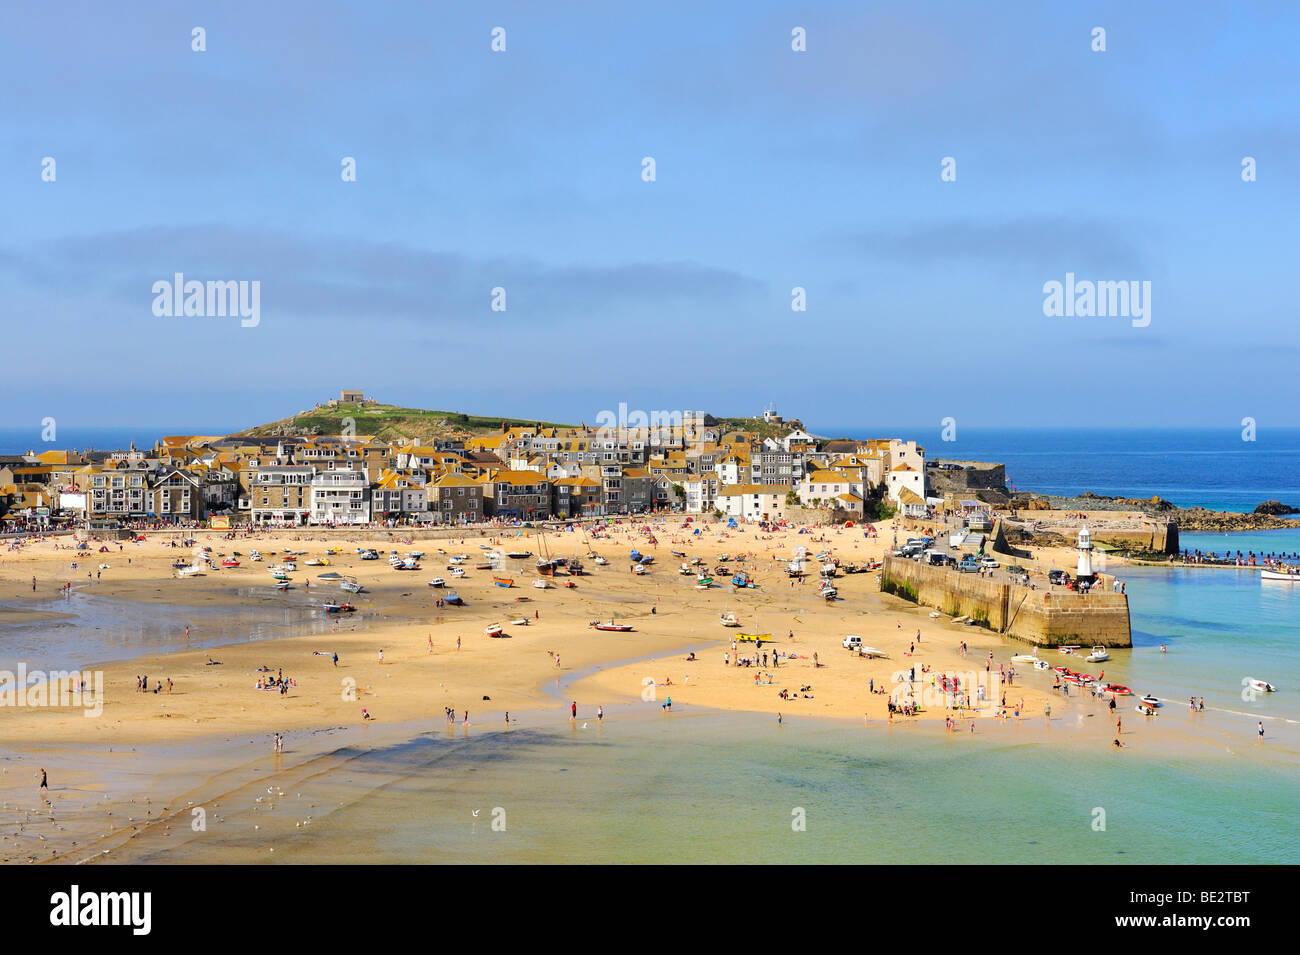 Overlooking the harbour of St. Ives at low tide, Cornwall, England, UK, Europe Stock Photo